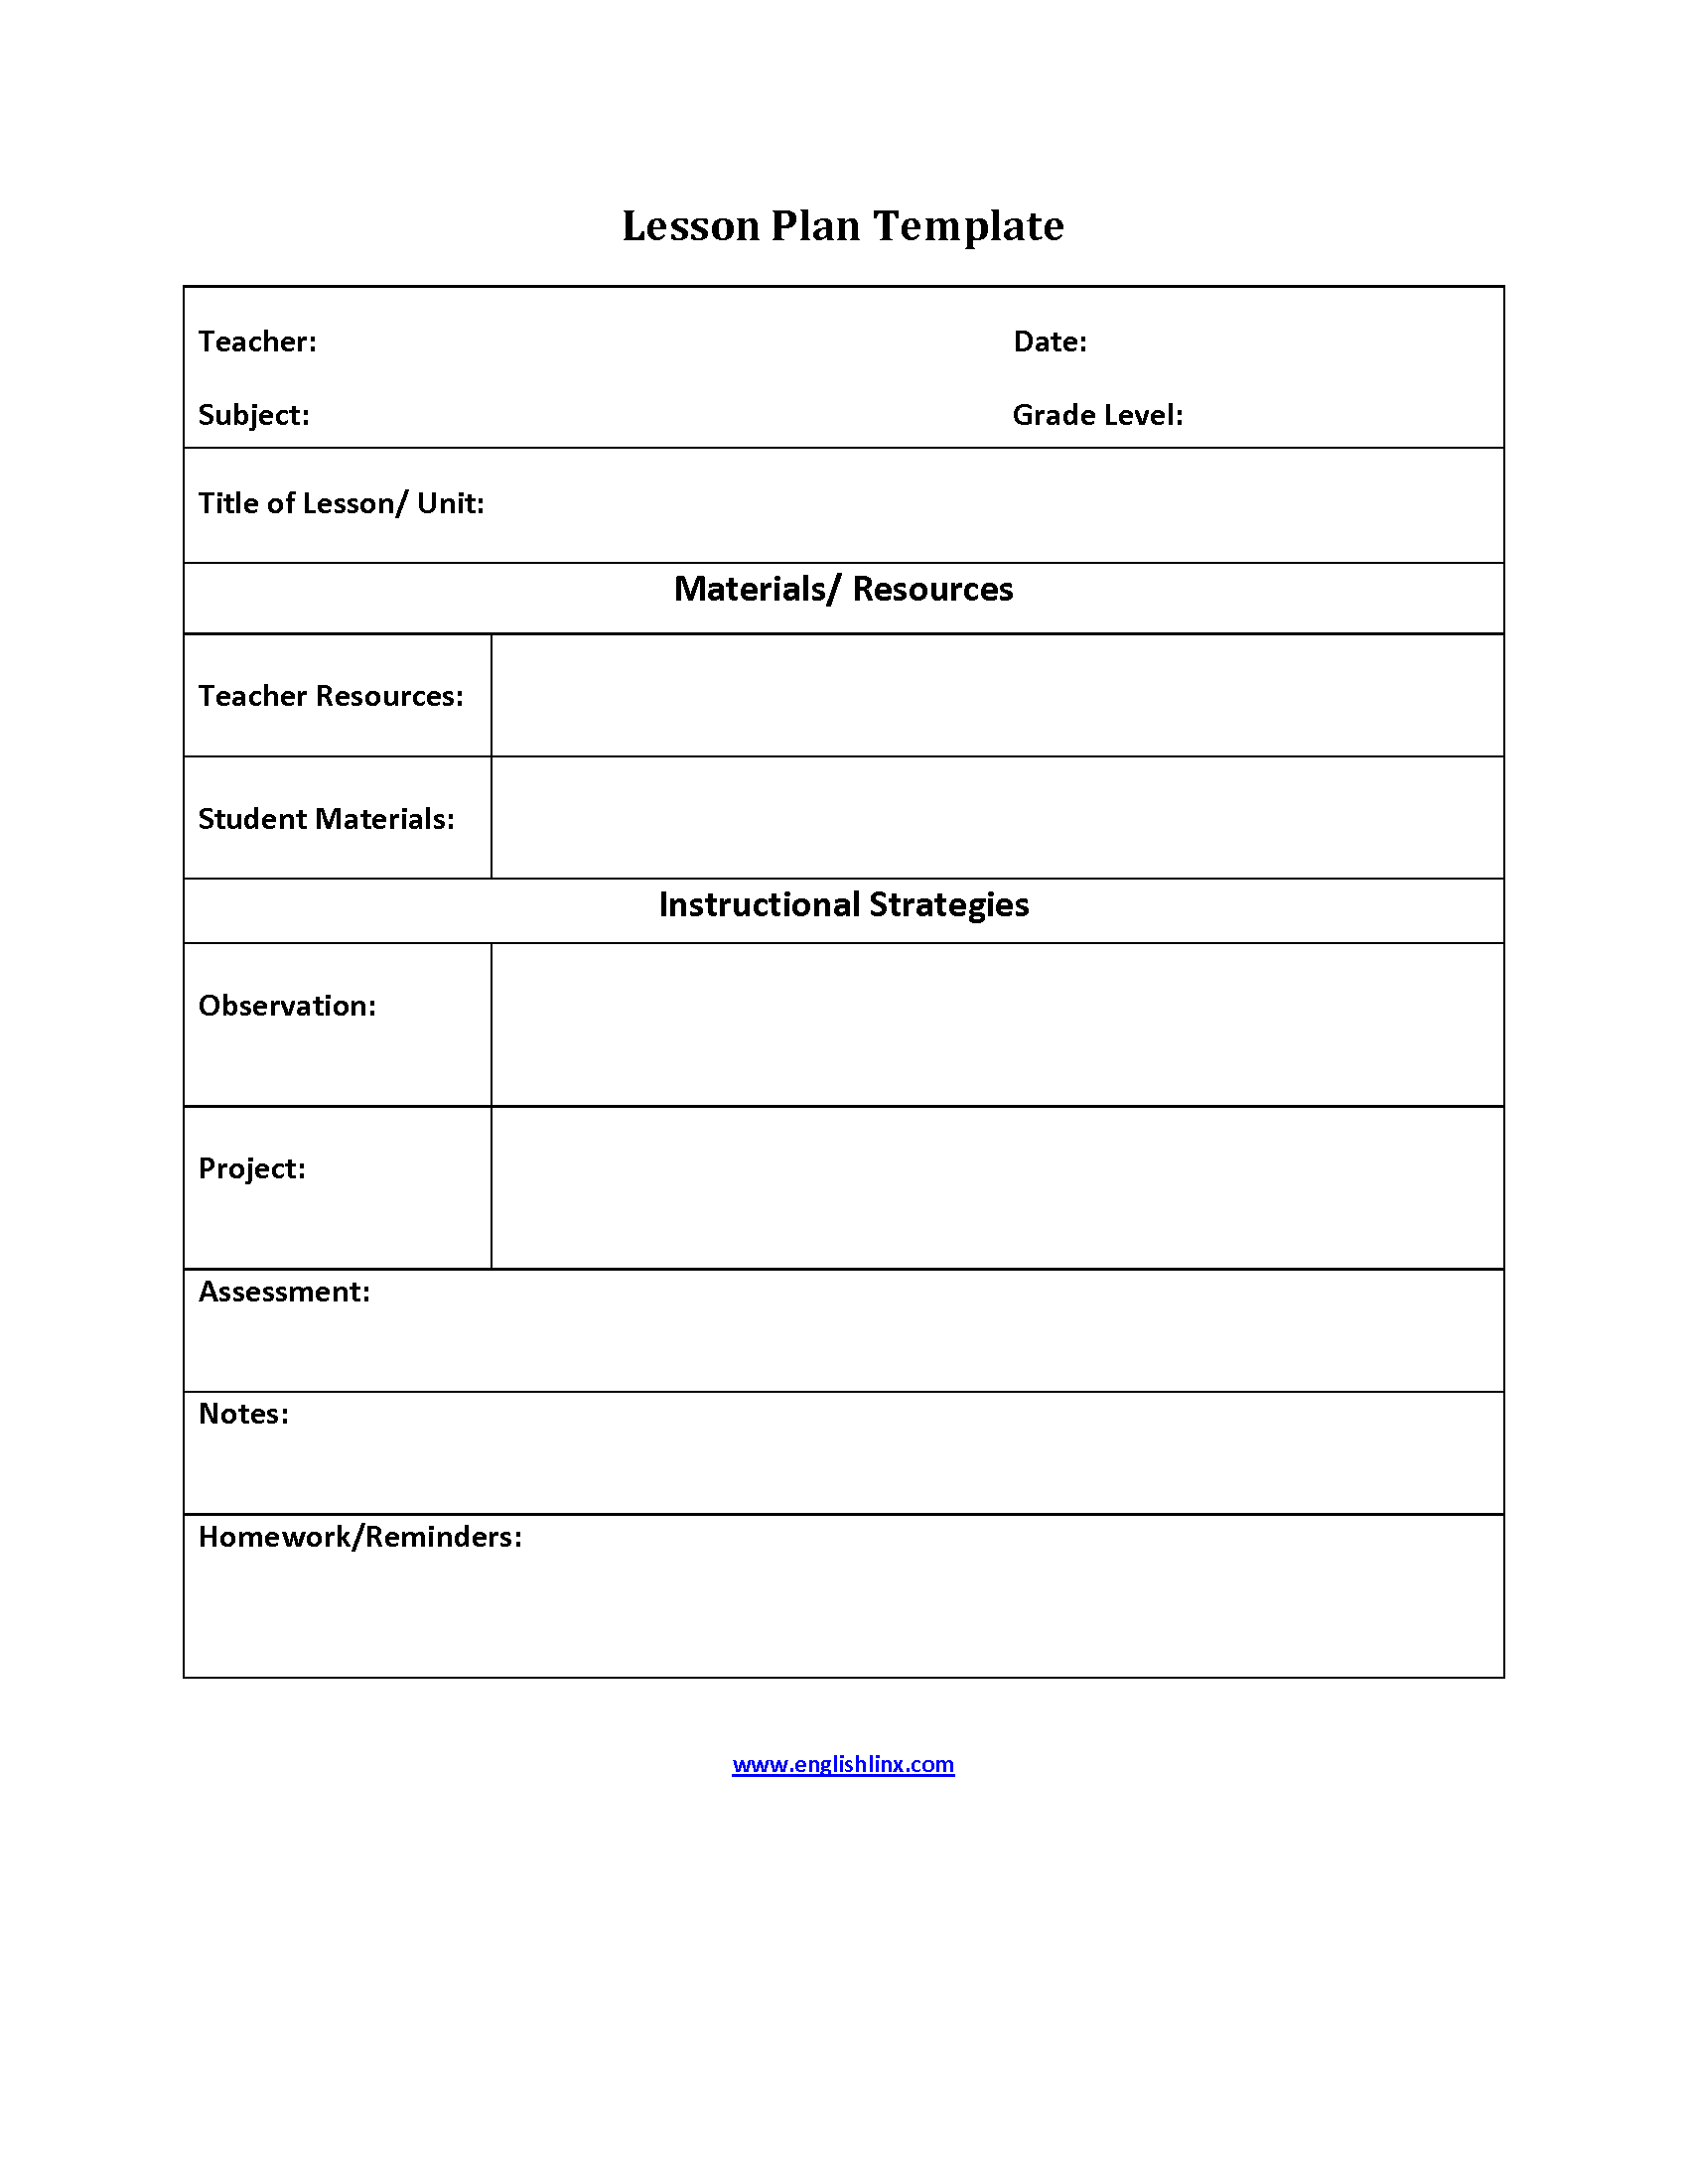 Lesson plan template simple lesson plan template for Efl lesson plan template